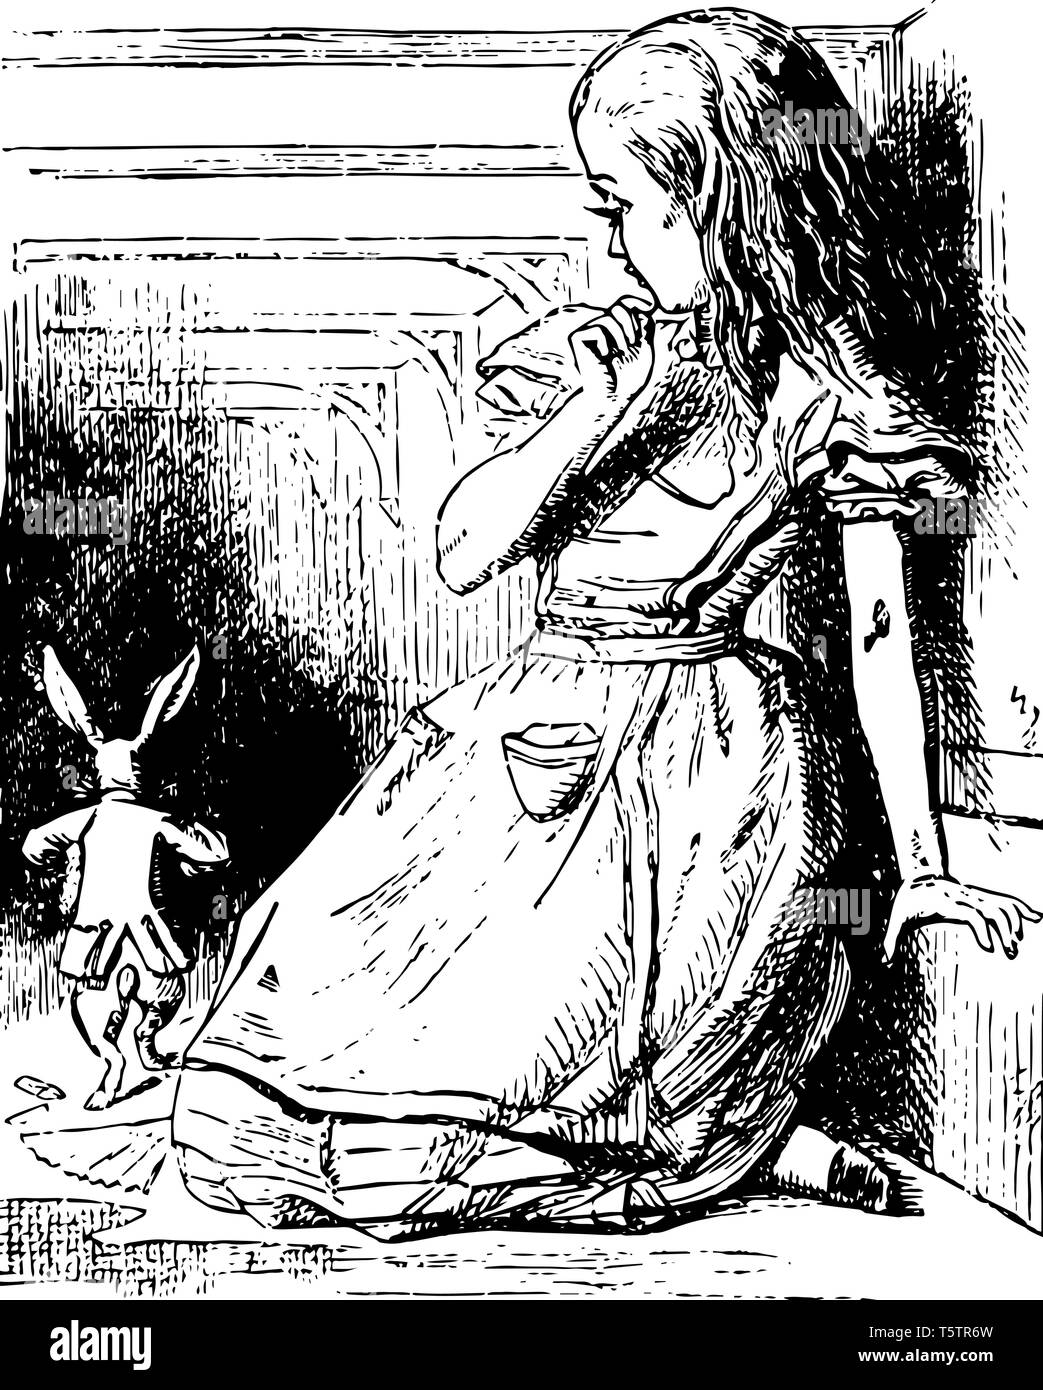 Alice Watches the White Rabbit Run Away this scene shows a little girl looking at running away rabbit vintage line drawing or engraving illustration Stock Vector